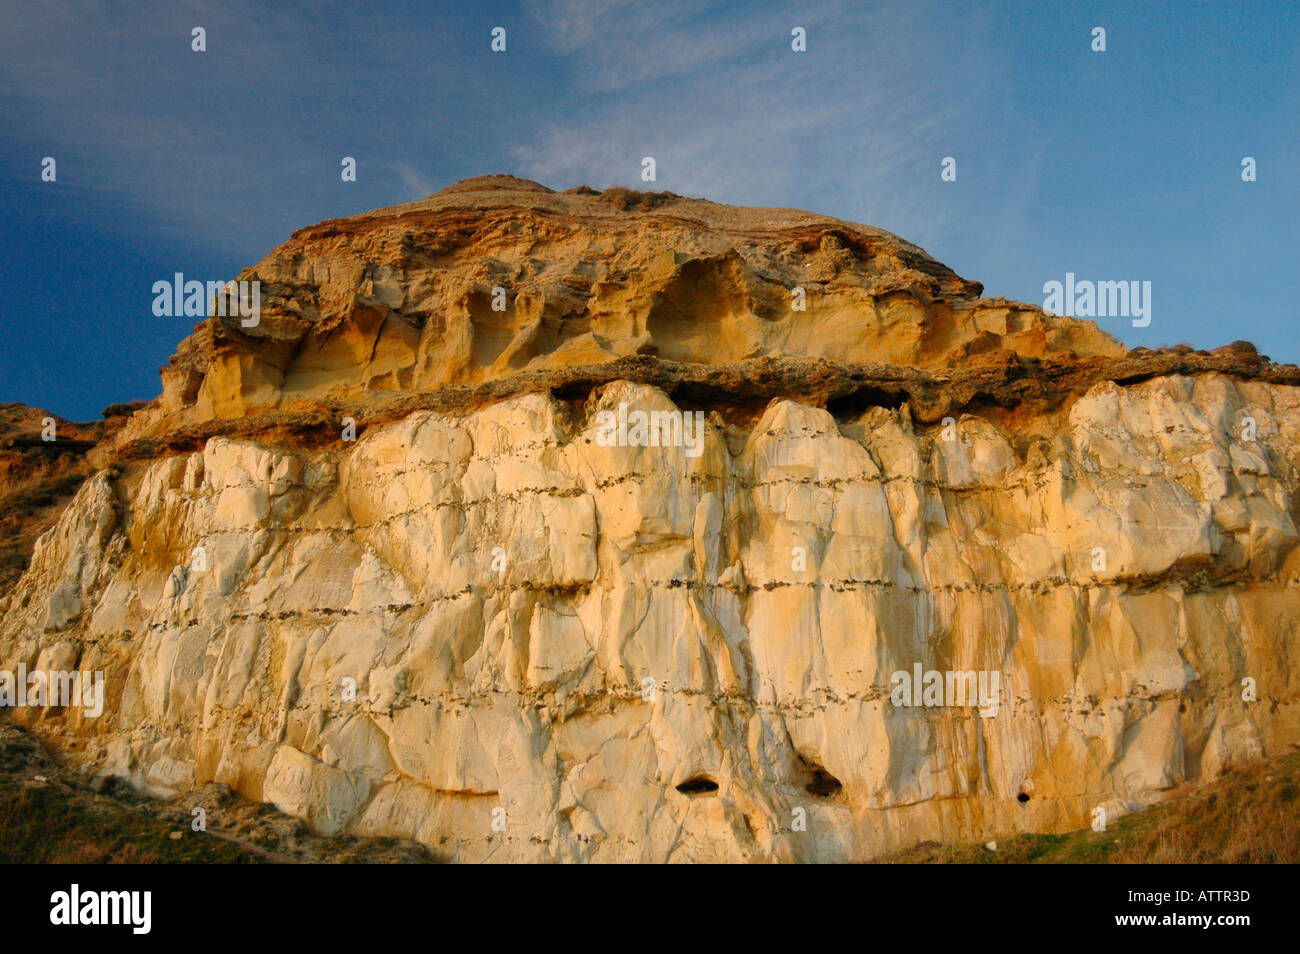 Tertiary sandstones and clays on top of the Cretaceous  chalk  cliffs. - Stock Image